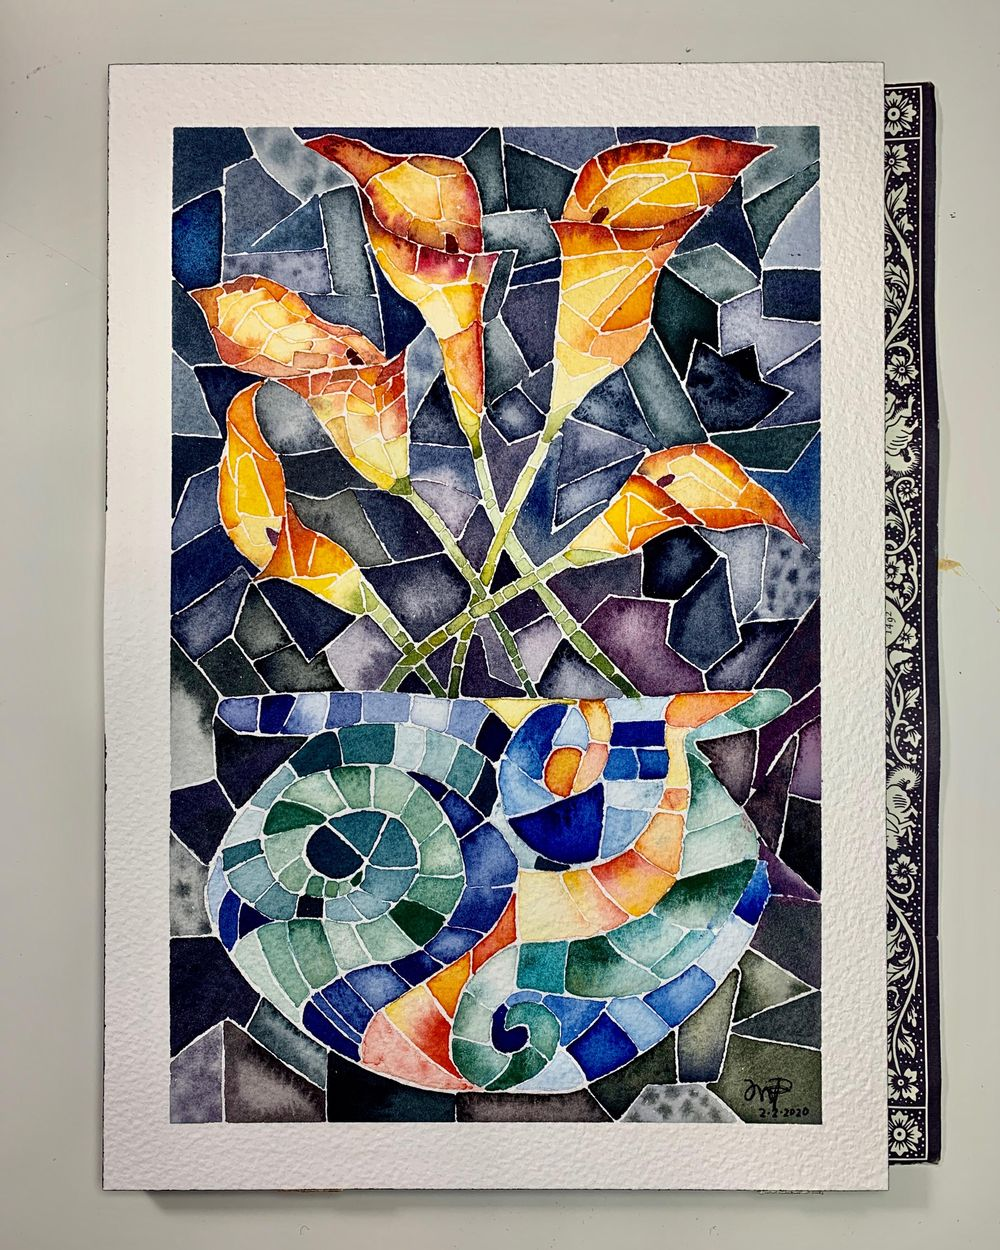 Calla lilies - image 1 - student project